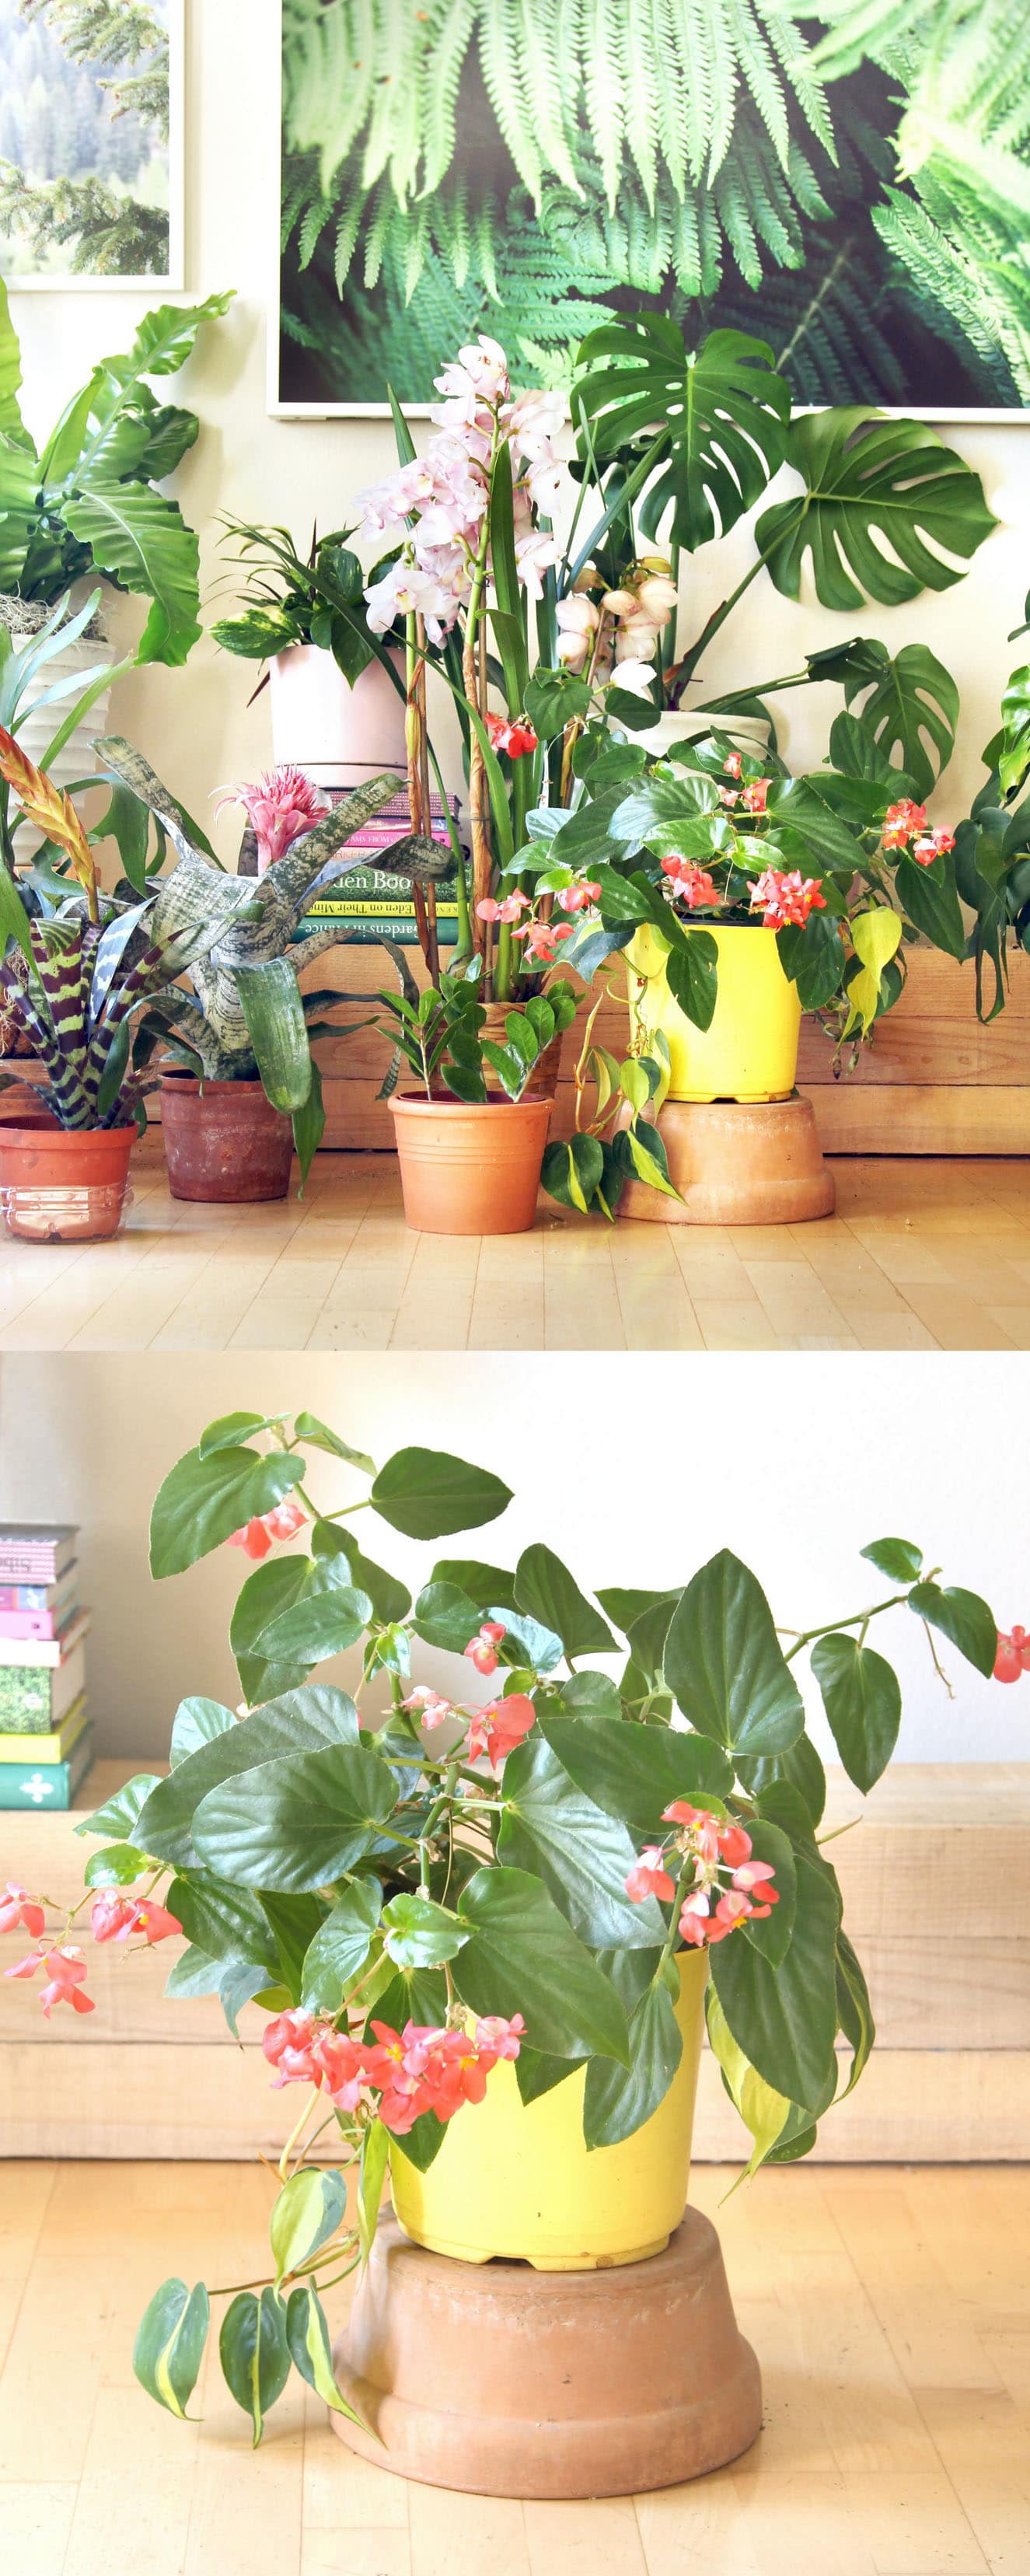 18 Most Beautiful Indoor Plants 5 Easy Care Tips A Piece Of Rainbow